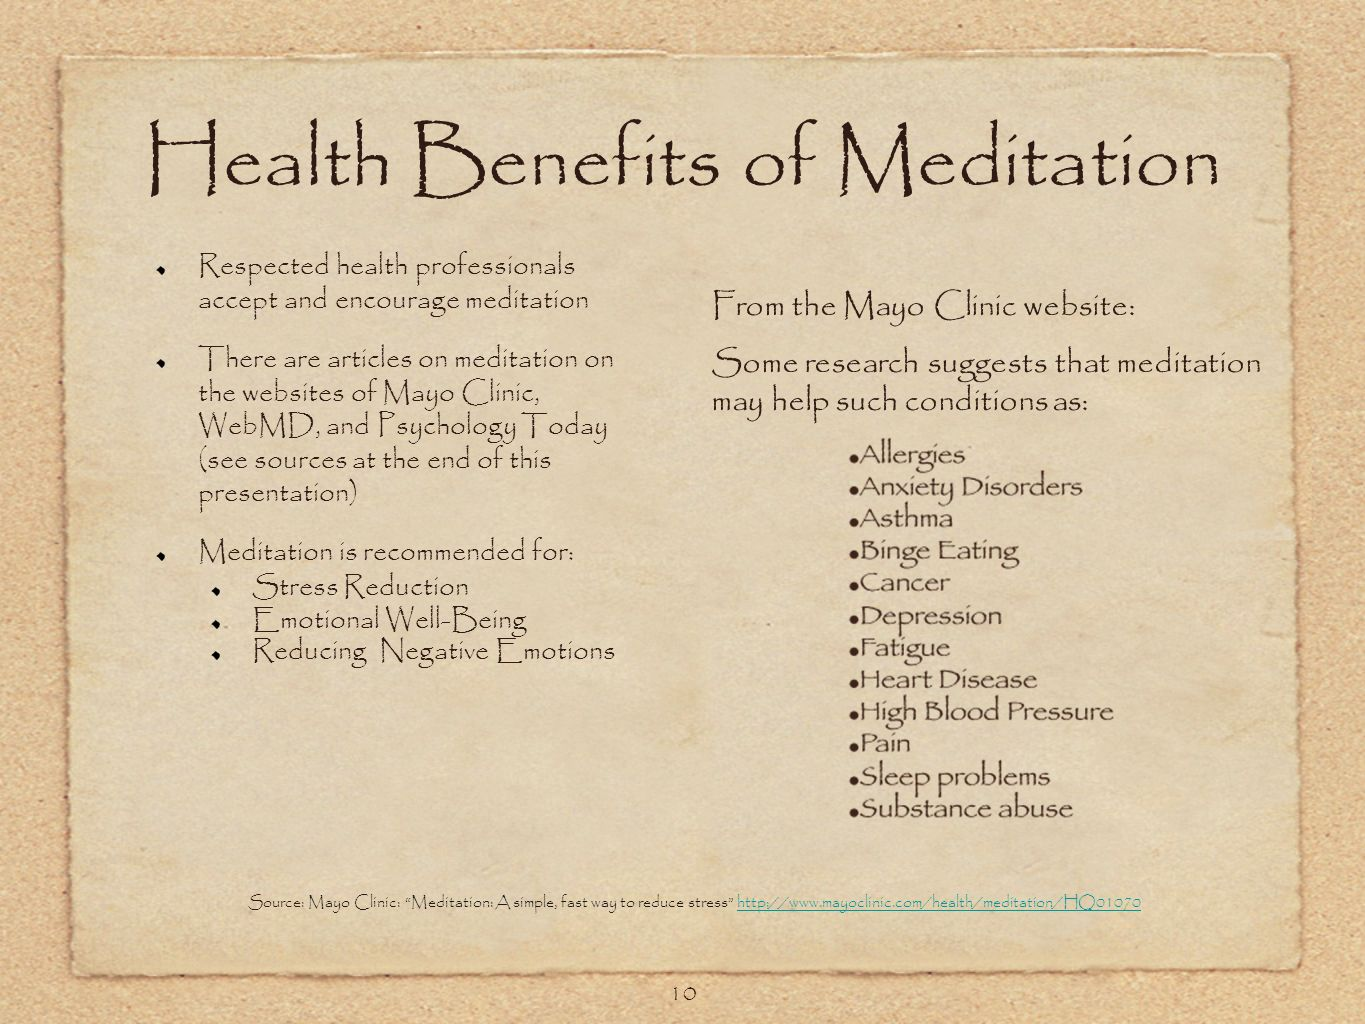 10 Health Benefits of Meditation Respected health professionals accept and encourage meditation There are articles on meditation on the websites of Mayo Clinic, WebMD, and Psychology Today (see sources at the end of this presentation) Meditation is recommended for: Stress Reduction Emotional Well-Being Reducing Negative Emotions Source: Mayo Clinic: Meditation: A simple, fast way to reduce stress http://www.mayoclinic.com/health/meditation/HQ01070http://www.mayoclinic.com/health/meditation/HQ01070 From the Mayo Clinic website: Some research suggests that meditation may help such conditions as: